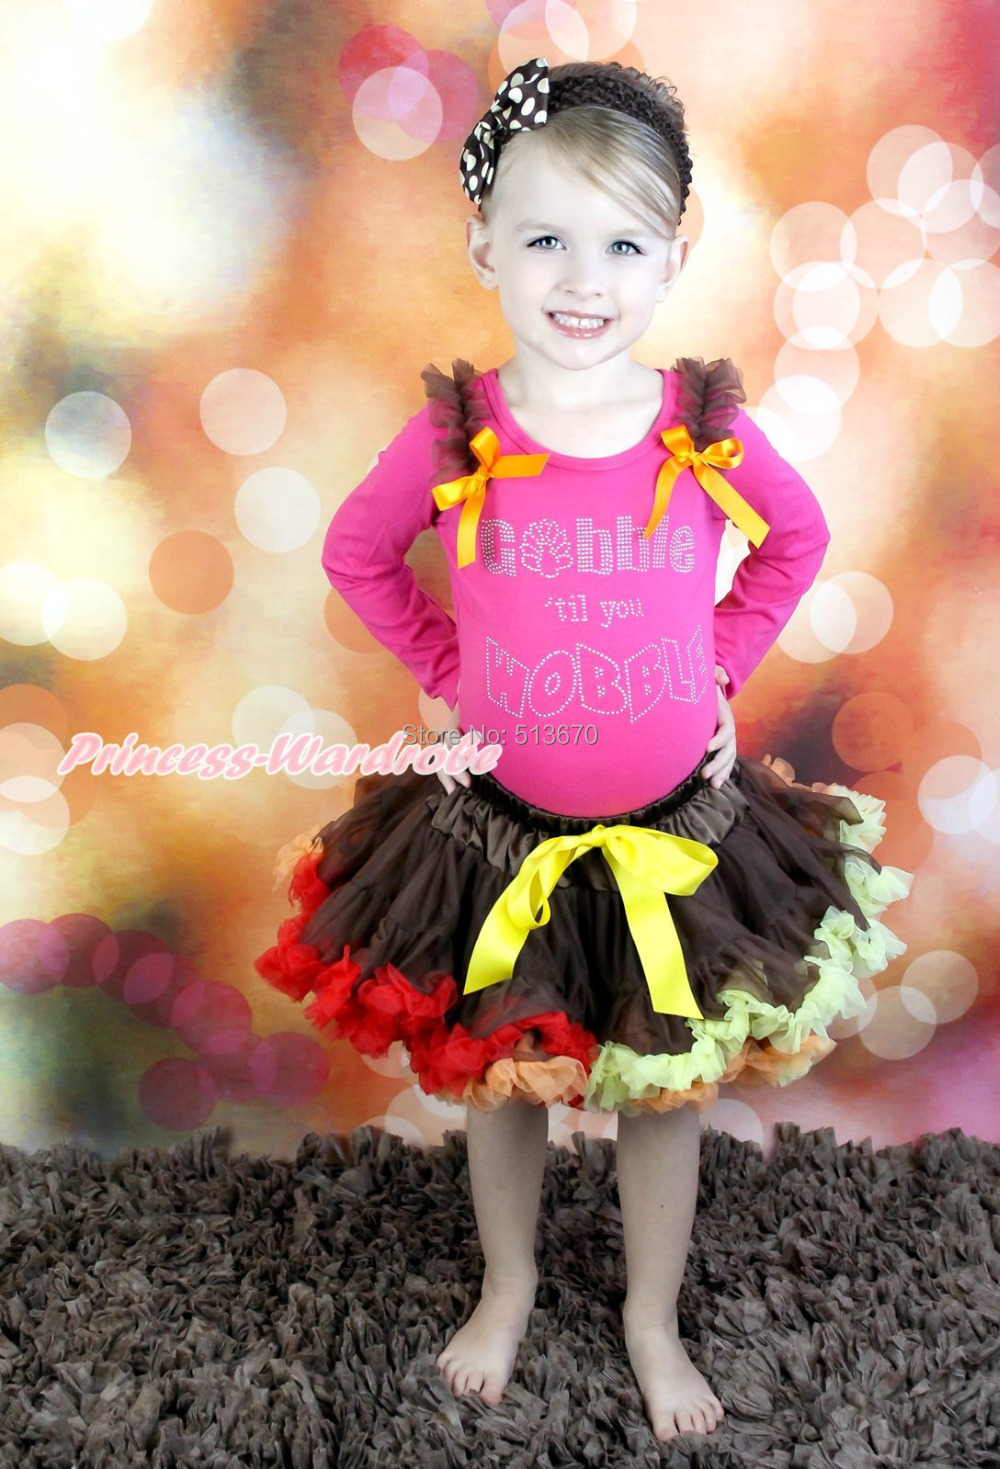 Thanksgiving Rhinestone Gobble Wobble Top Brown Skirt Baby Girl Outfit 1-8Year MAPSA0076<br>